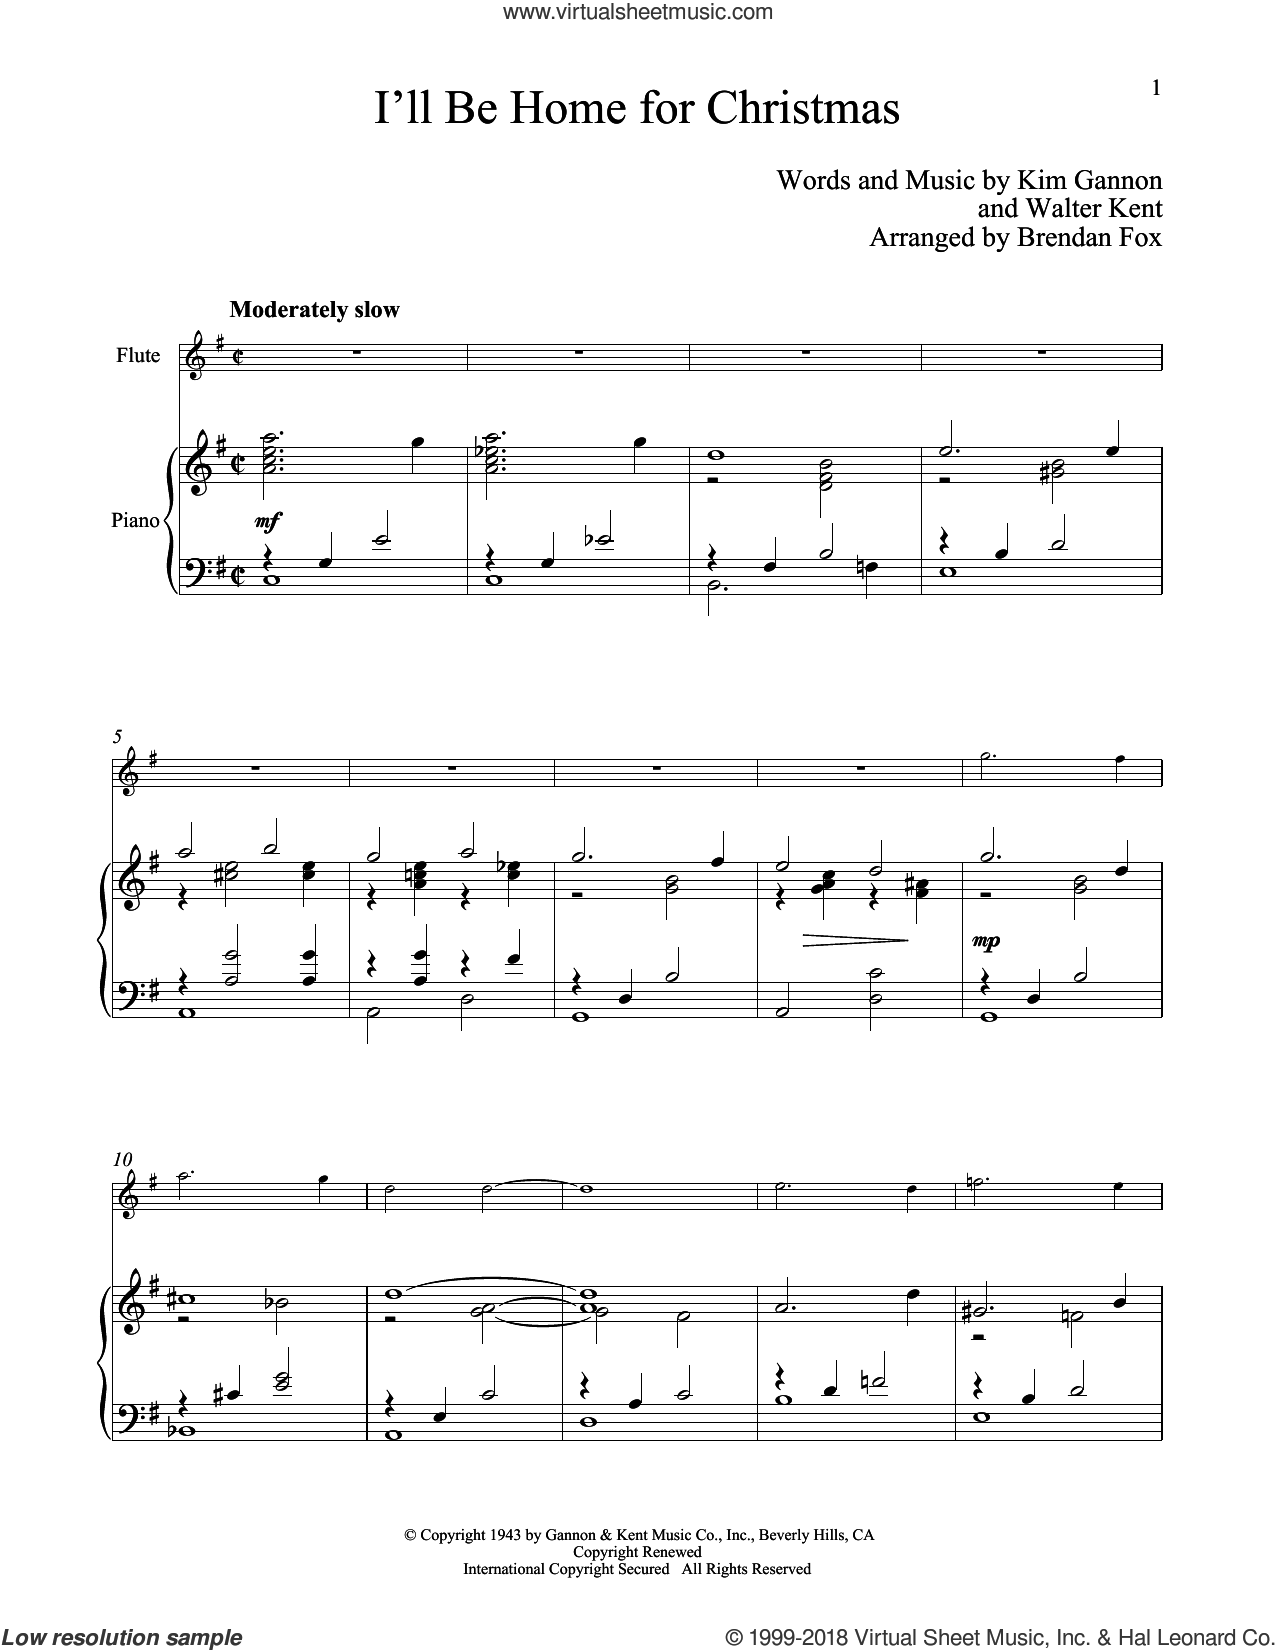 I'll Be Home For Christmas sheet music for flute and piano by Kim Gannon and Walter Kent, classical score, intermediate skill level